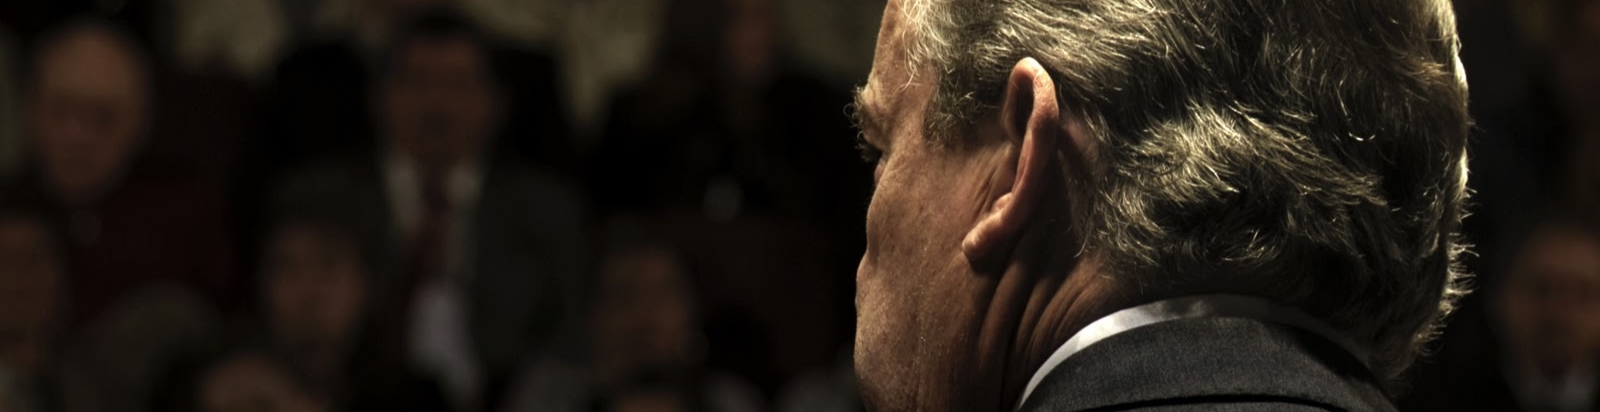 Wednesday, February 26, 7pm EL ALCALDE / THE MAYOR  (Emiliano Altuna, Carlos F. Rossini, and Diego Osorno, Mexico, 2012, 81 min. In Spanish with English subtitles) Winner – Best Documentary  Winner of the Best Documentary prize at the Cartagena and the Baja Film Festivals,El alcalde is an engrossing portrait of Mexican millionaireMauricio Fernandez, a larger-than-life and frequently controversial politician who is the mayor of Latin America's wealthiest municipality. He presents himself as an active ruler who is capable of cleaning his municipality of the drug cartels presence without questioning the methods he uses to achieve it. El alcalde describes the wild times of a country that is marked by violence and the complete discredit of the ruling class.